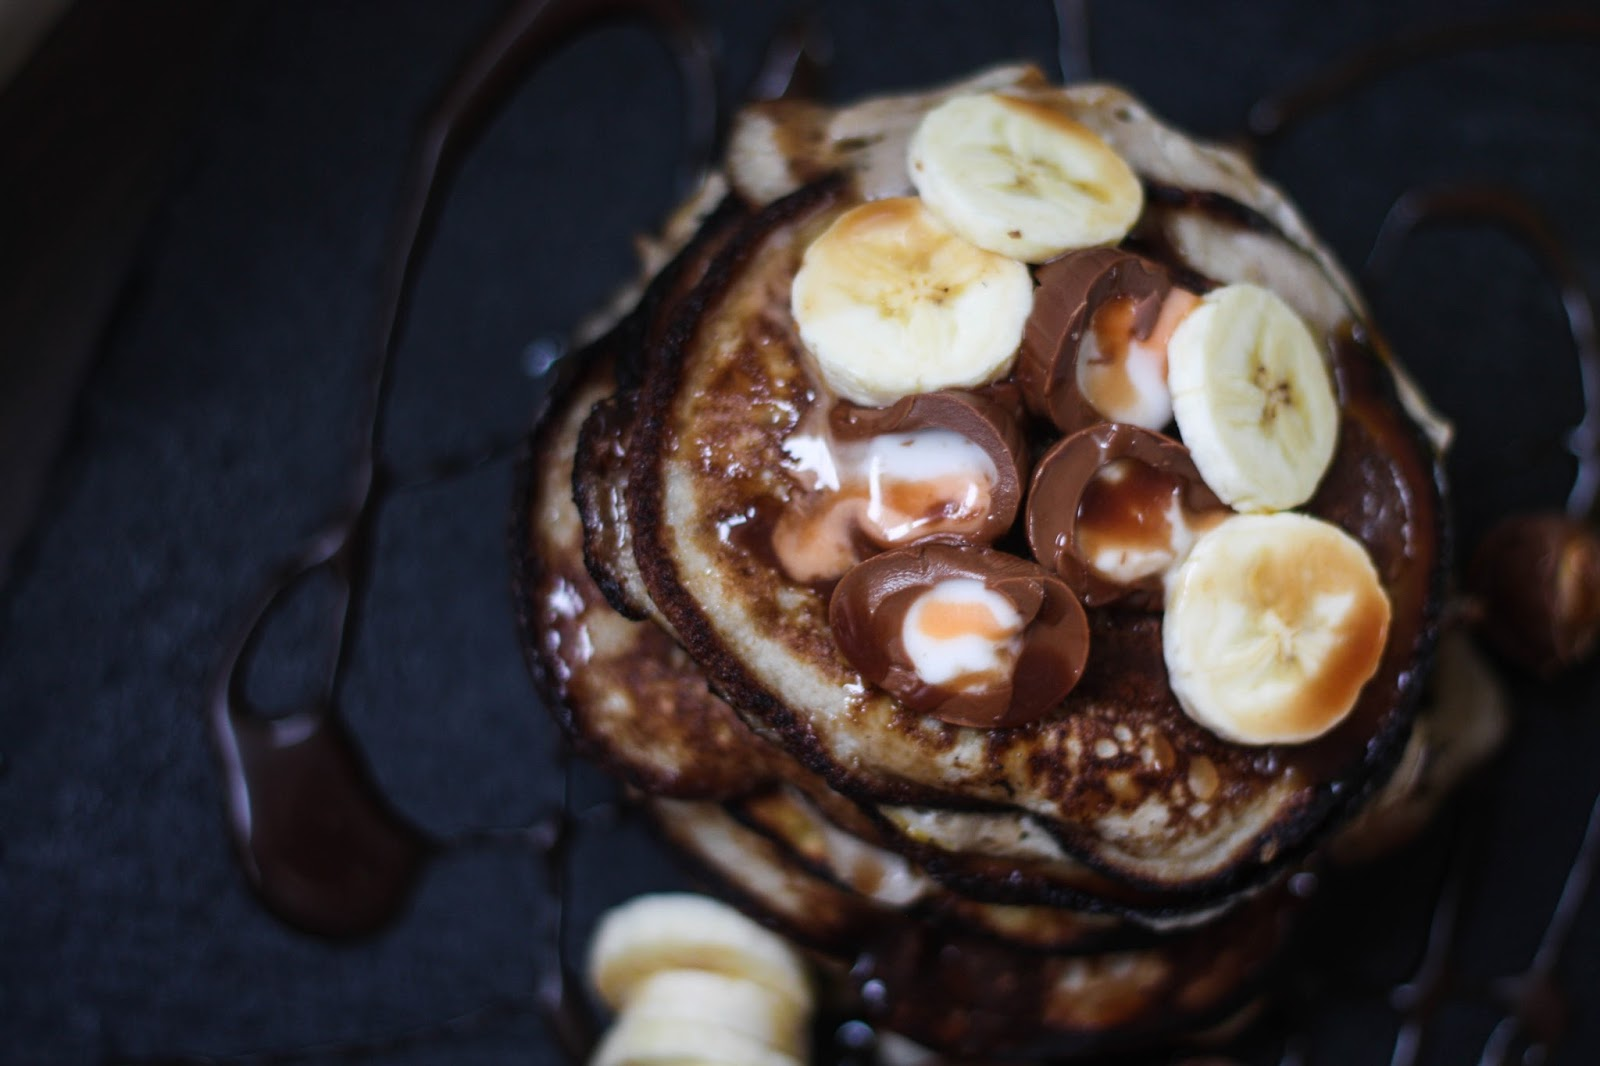 Banana pancakes with Creme Eggs